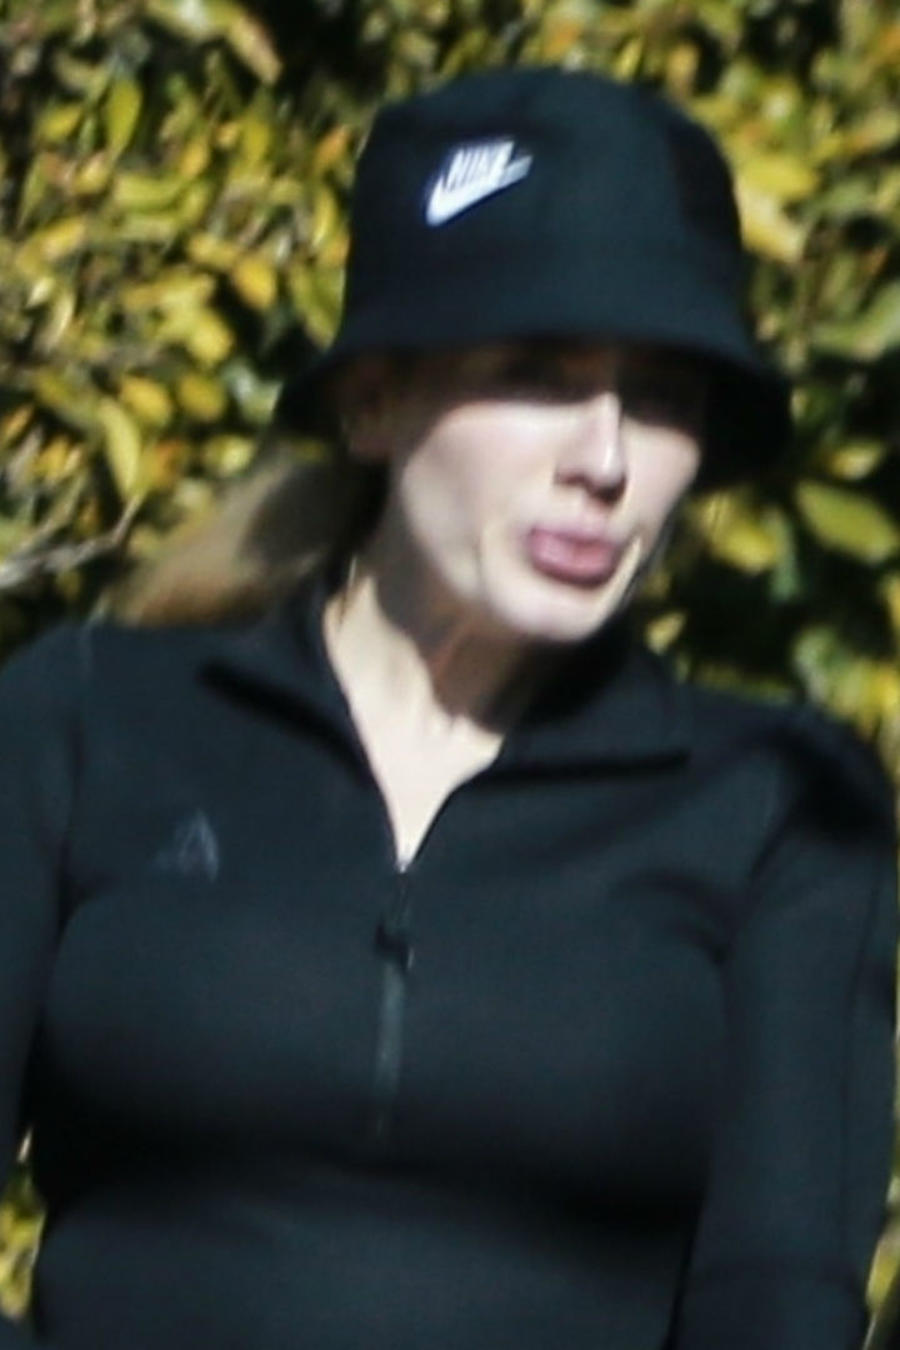 Adele con outfit deportivo